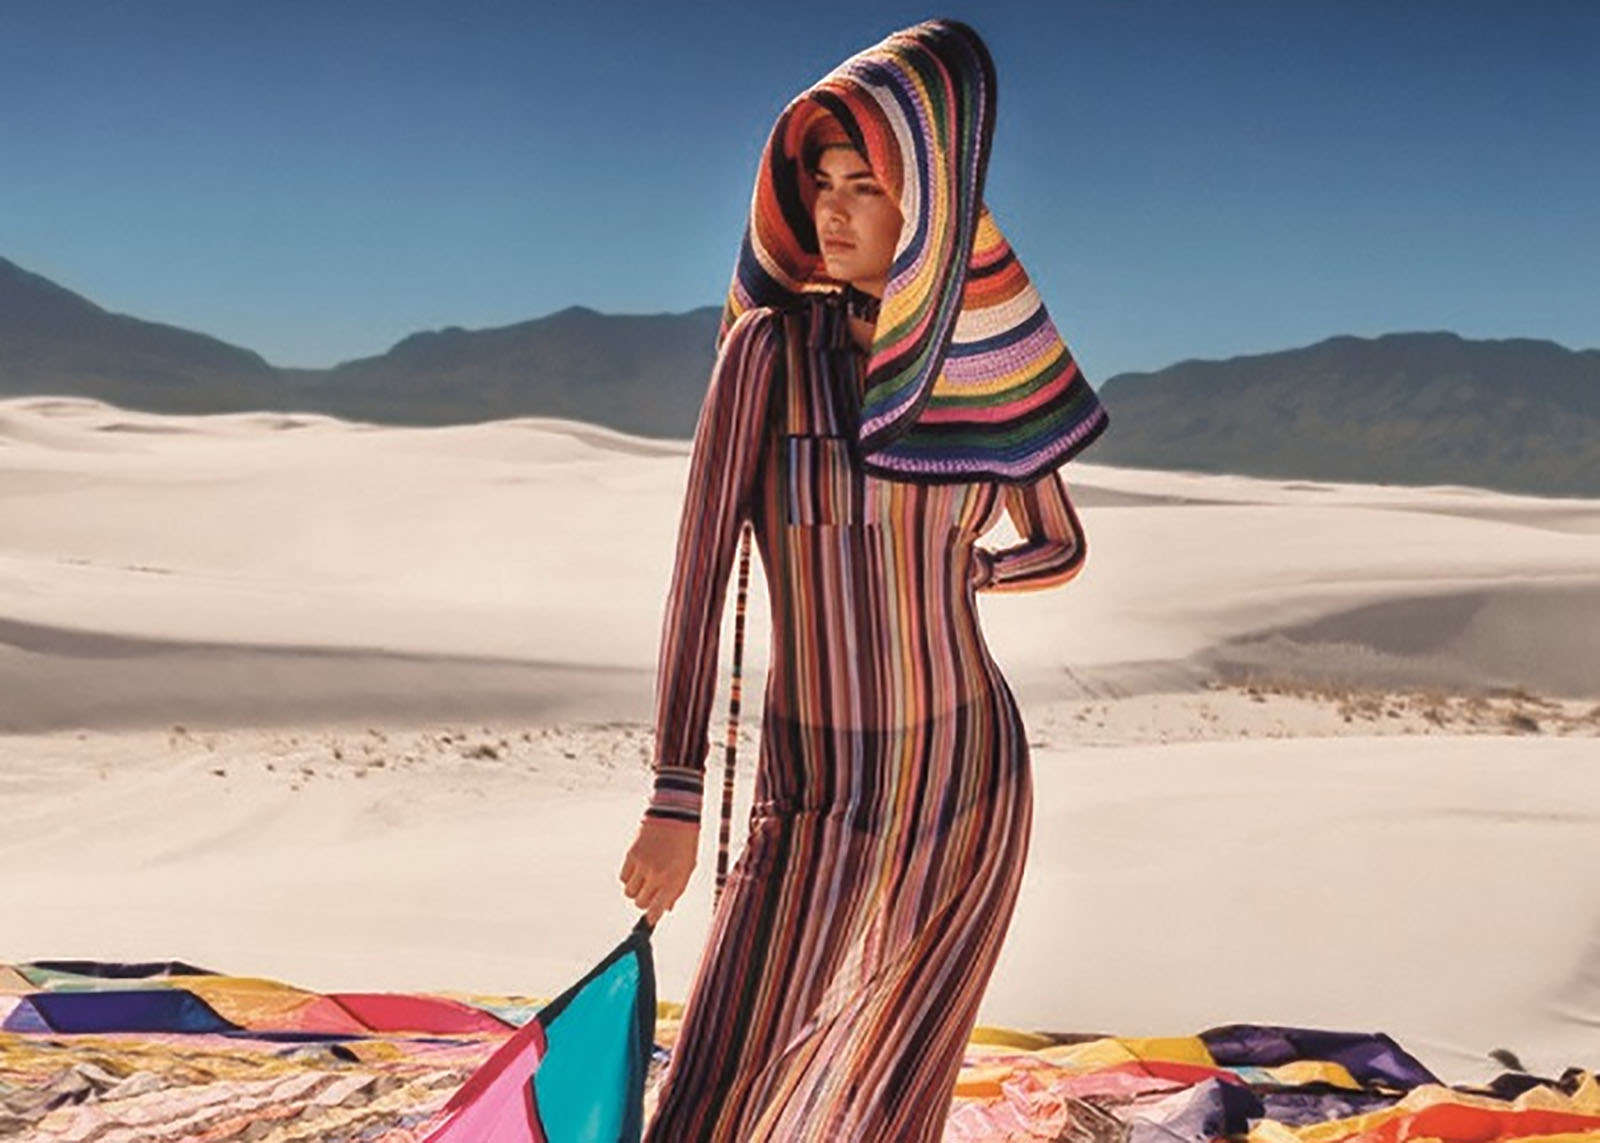 Missoni's Spring Summer 2018 Ads Feature Kendall Jenner